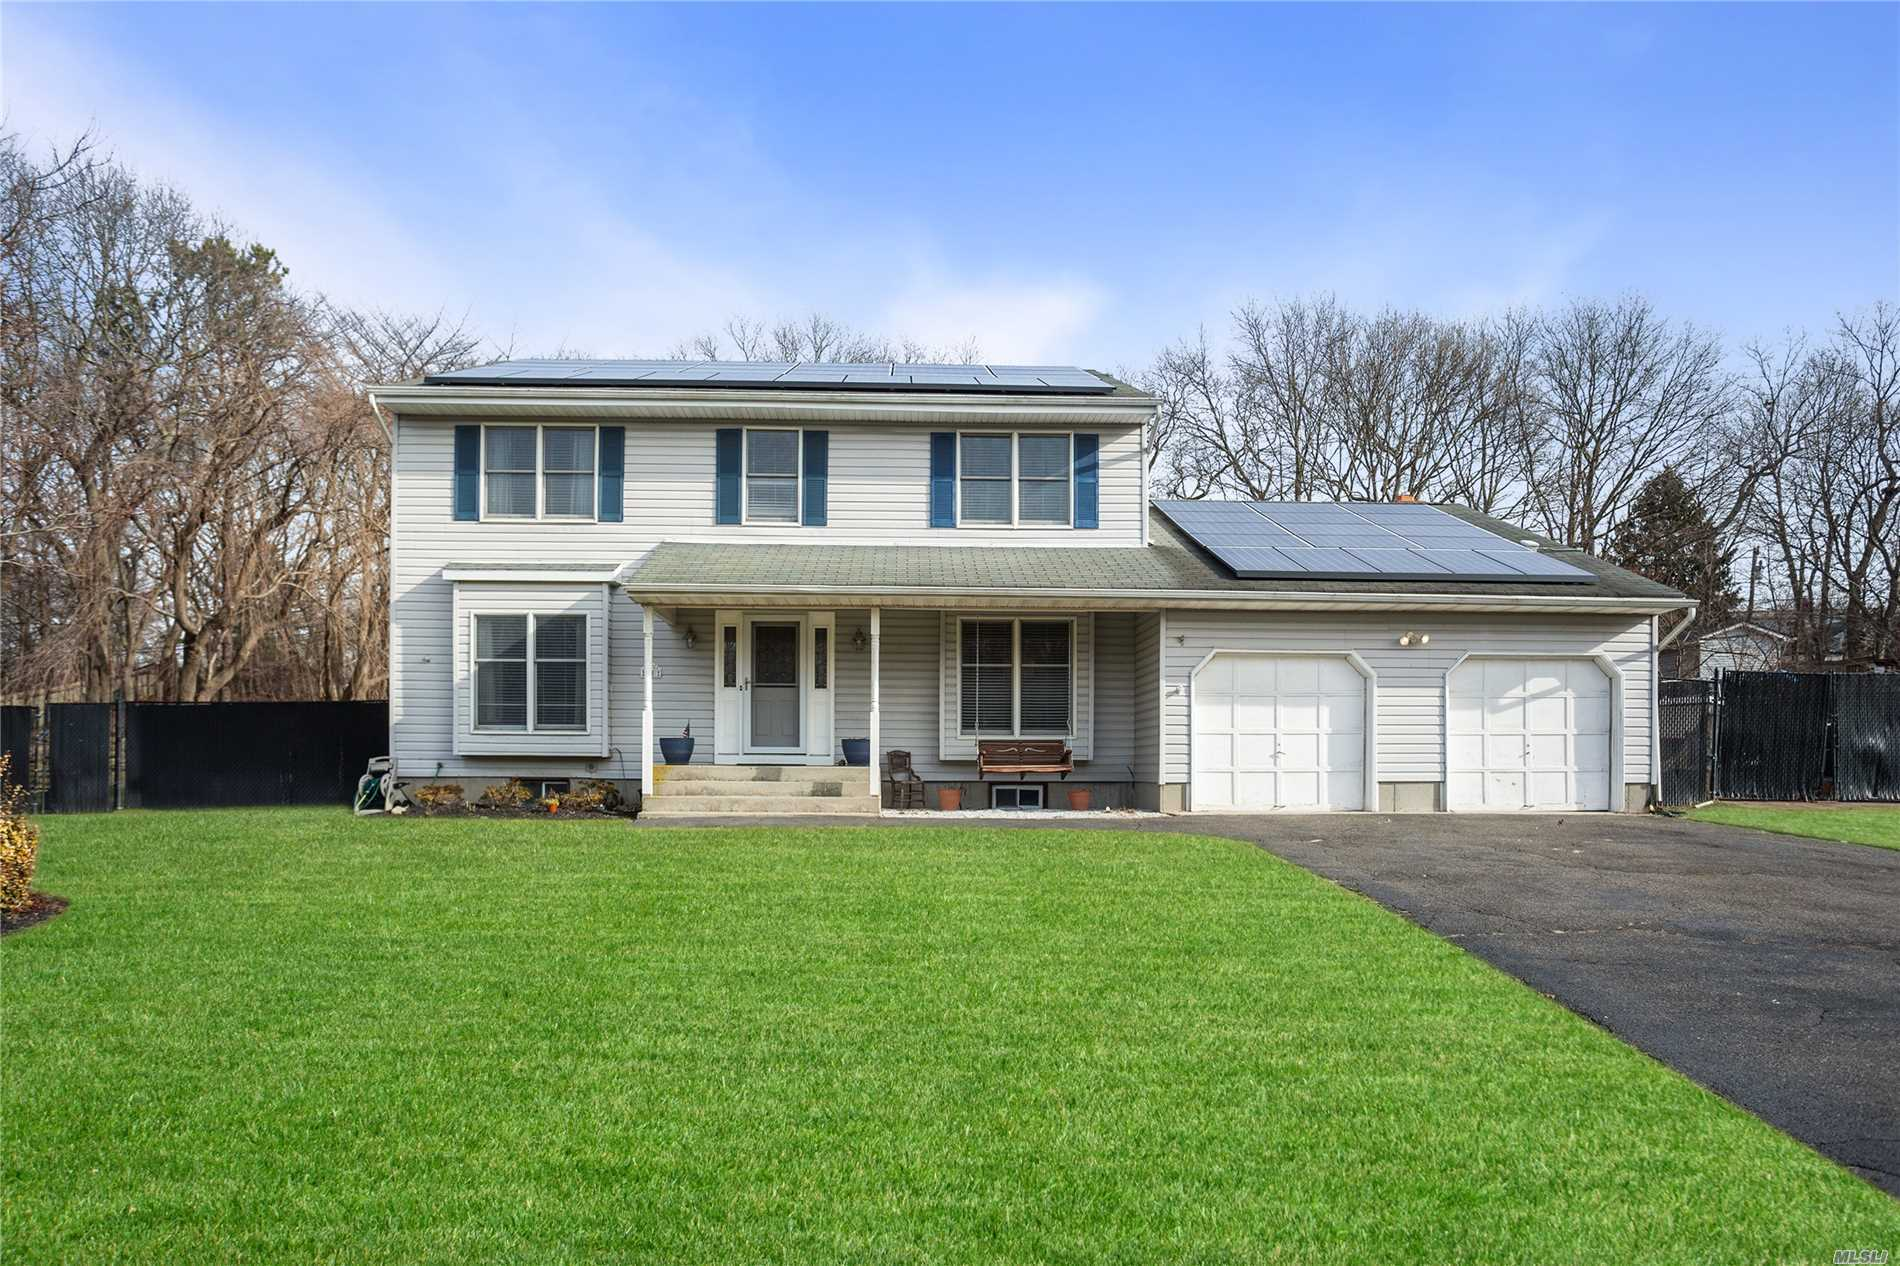 This Beautiful Sprawling 4 Bedroom 3 Bath Home In Sachem Schools Features Full Basement, Attic, Solar Panels, 2 Car Garage, And Family Room With Fireplace. New Kitchen And Baths, Multiple Skylights For Plenty Of Natural Light. Master Suite With Master Bath. Located On A Quiet Secluded Block.